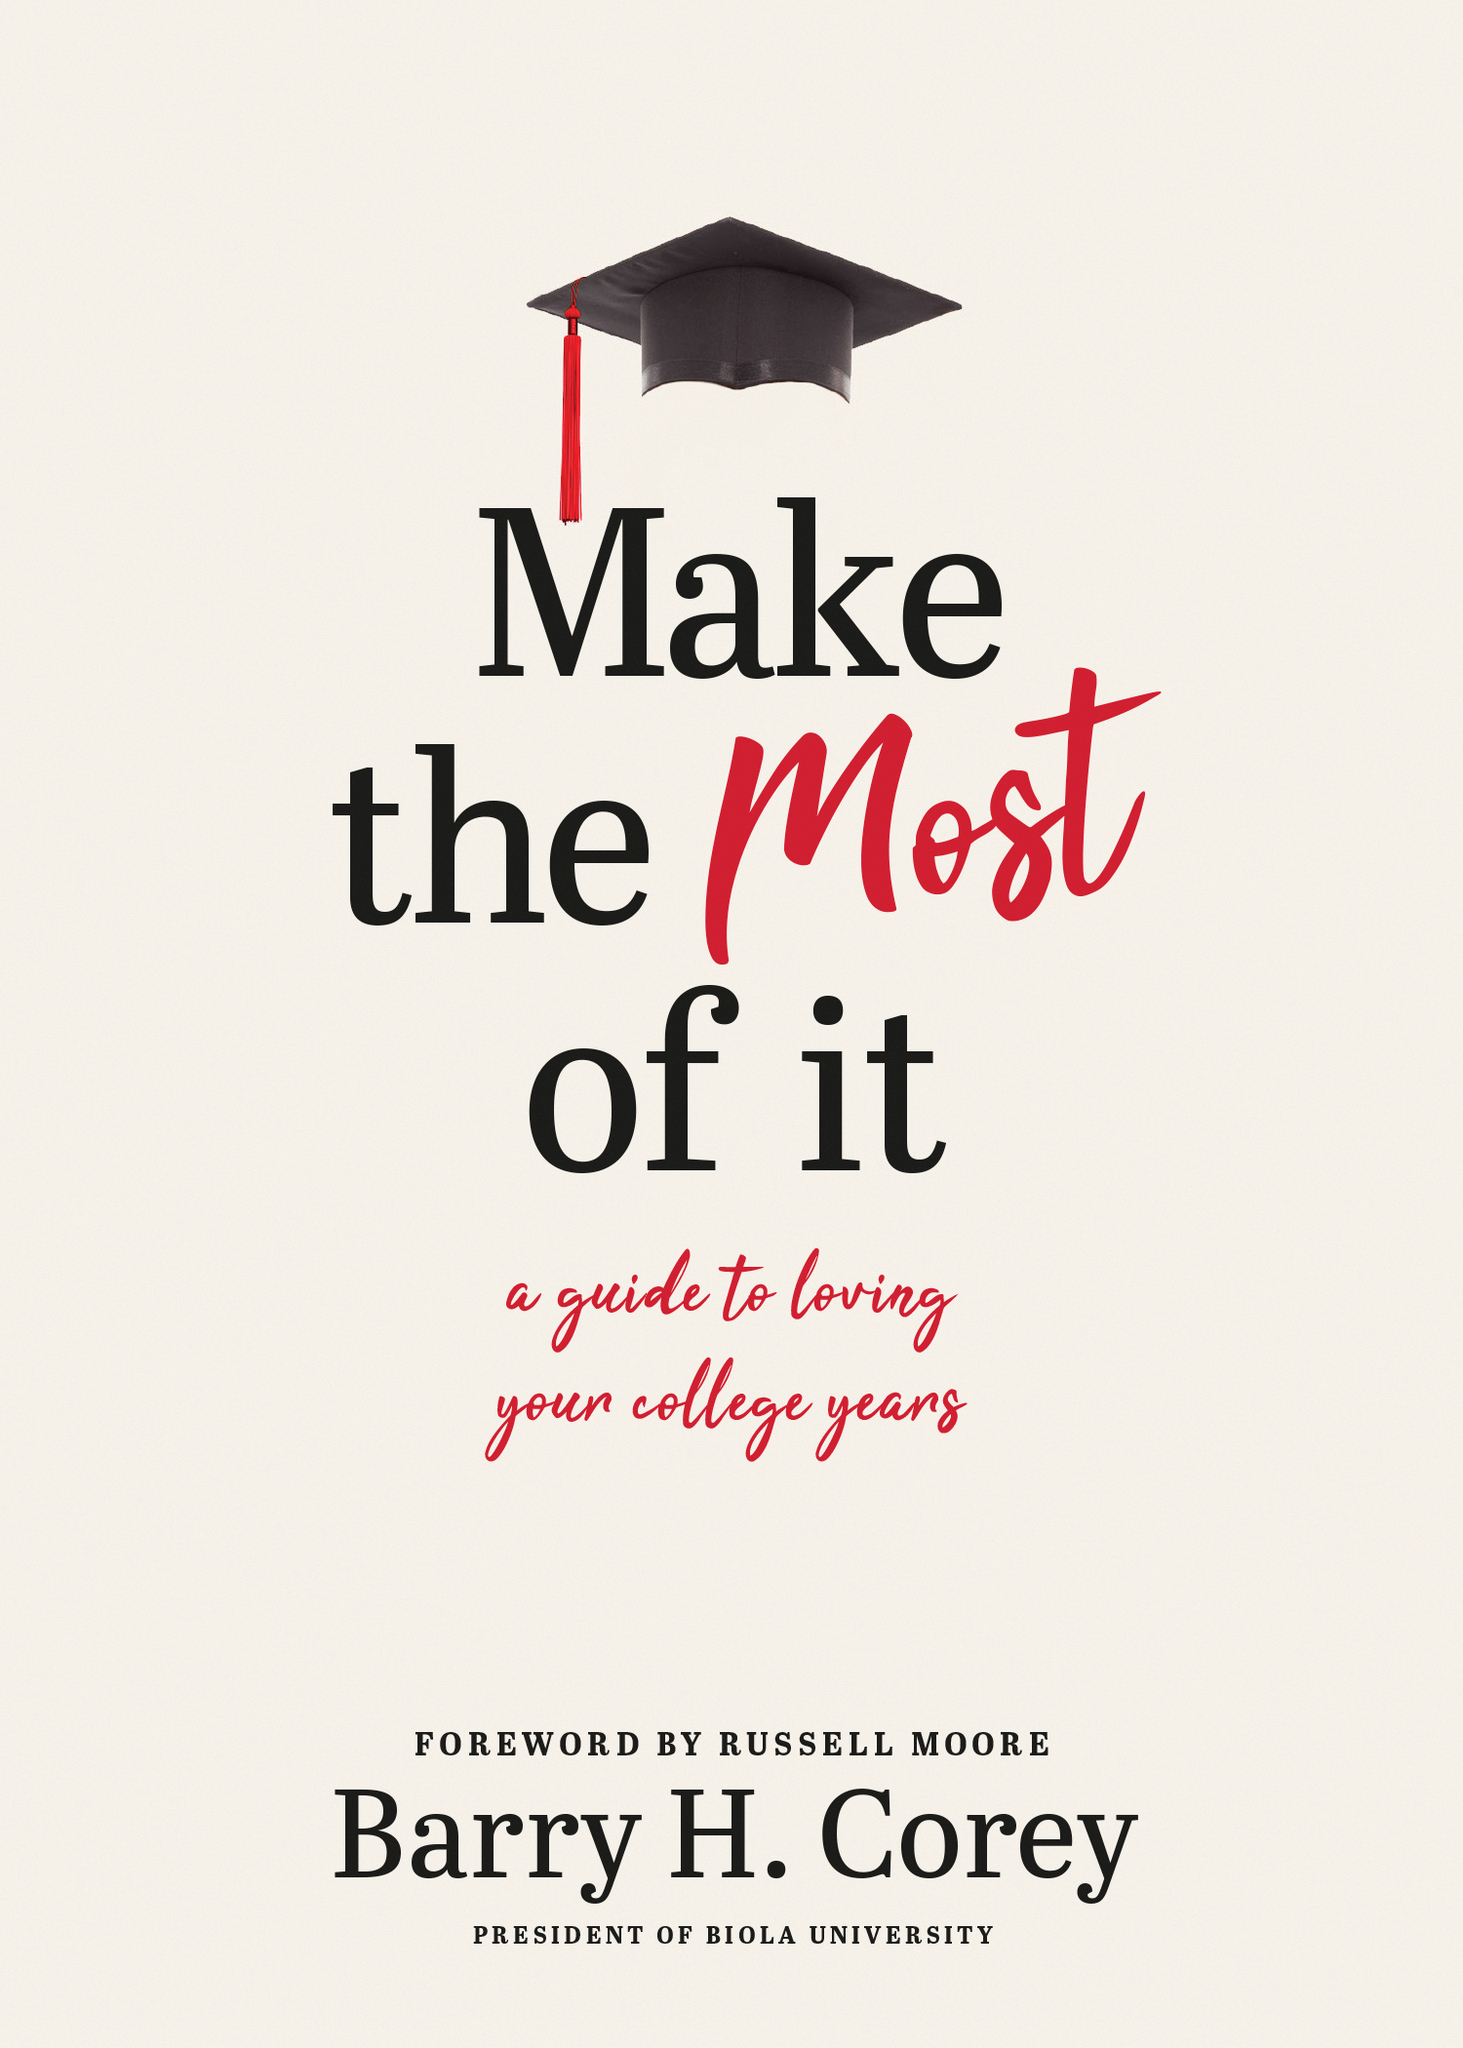 Cover image with text: Make the Most of it, a guide to loving your college years, by Barry H. Corey, president of Biola University, foreword by Russell Moore.